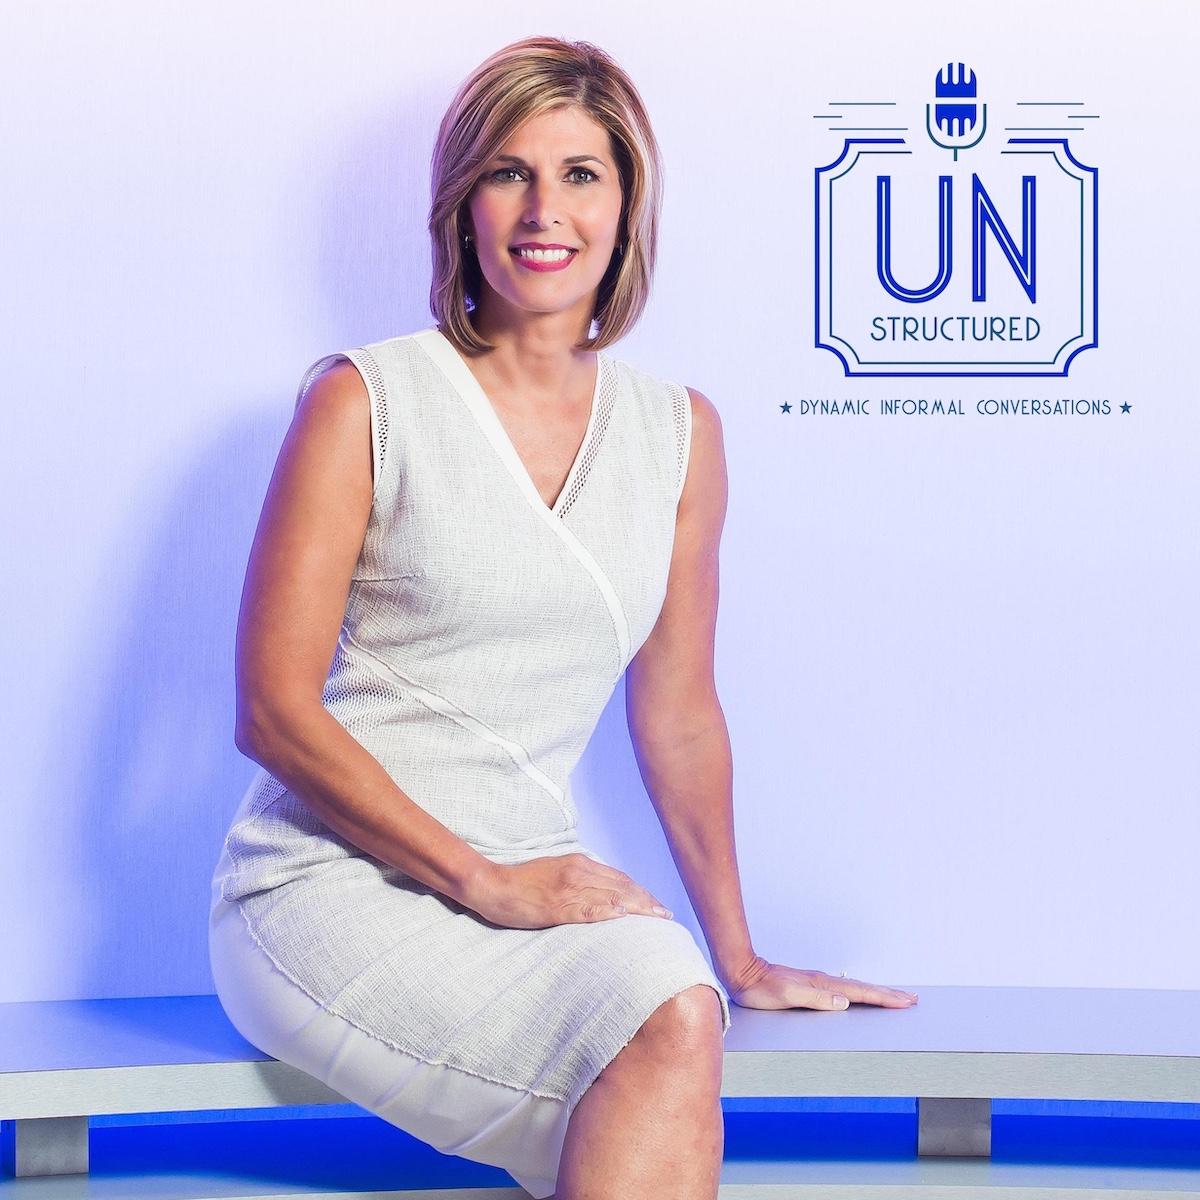 117 - Sharyl Attkisson - Unique wide-ranging and well-researched unstructured interviews hosted by Eric Hunley UnstructuredPod Dynamic Informal Conversations